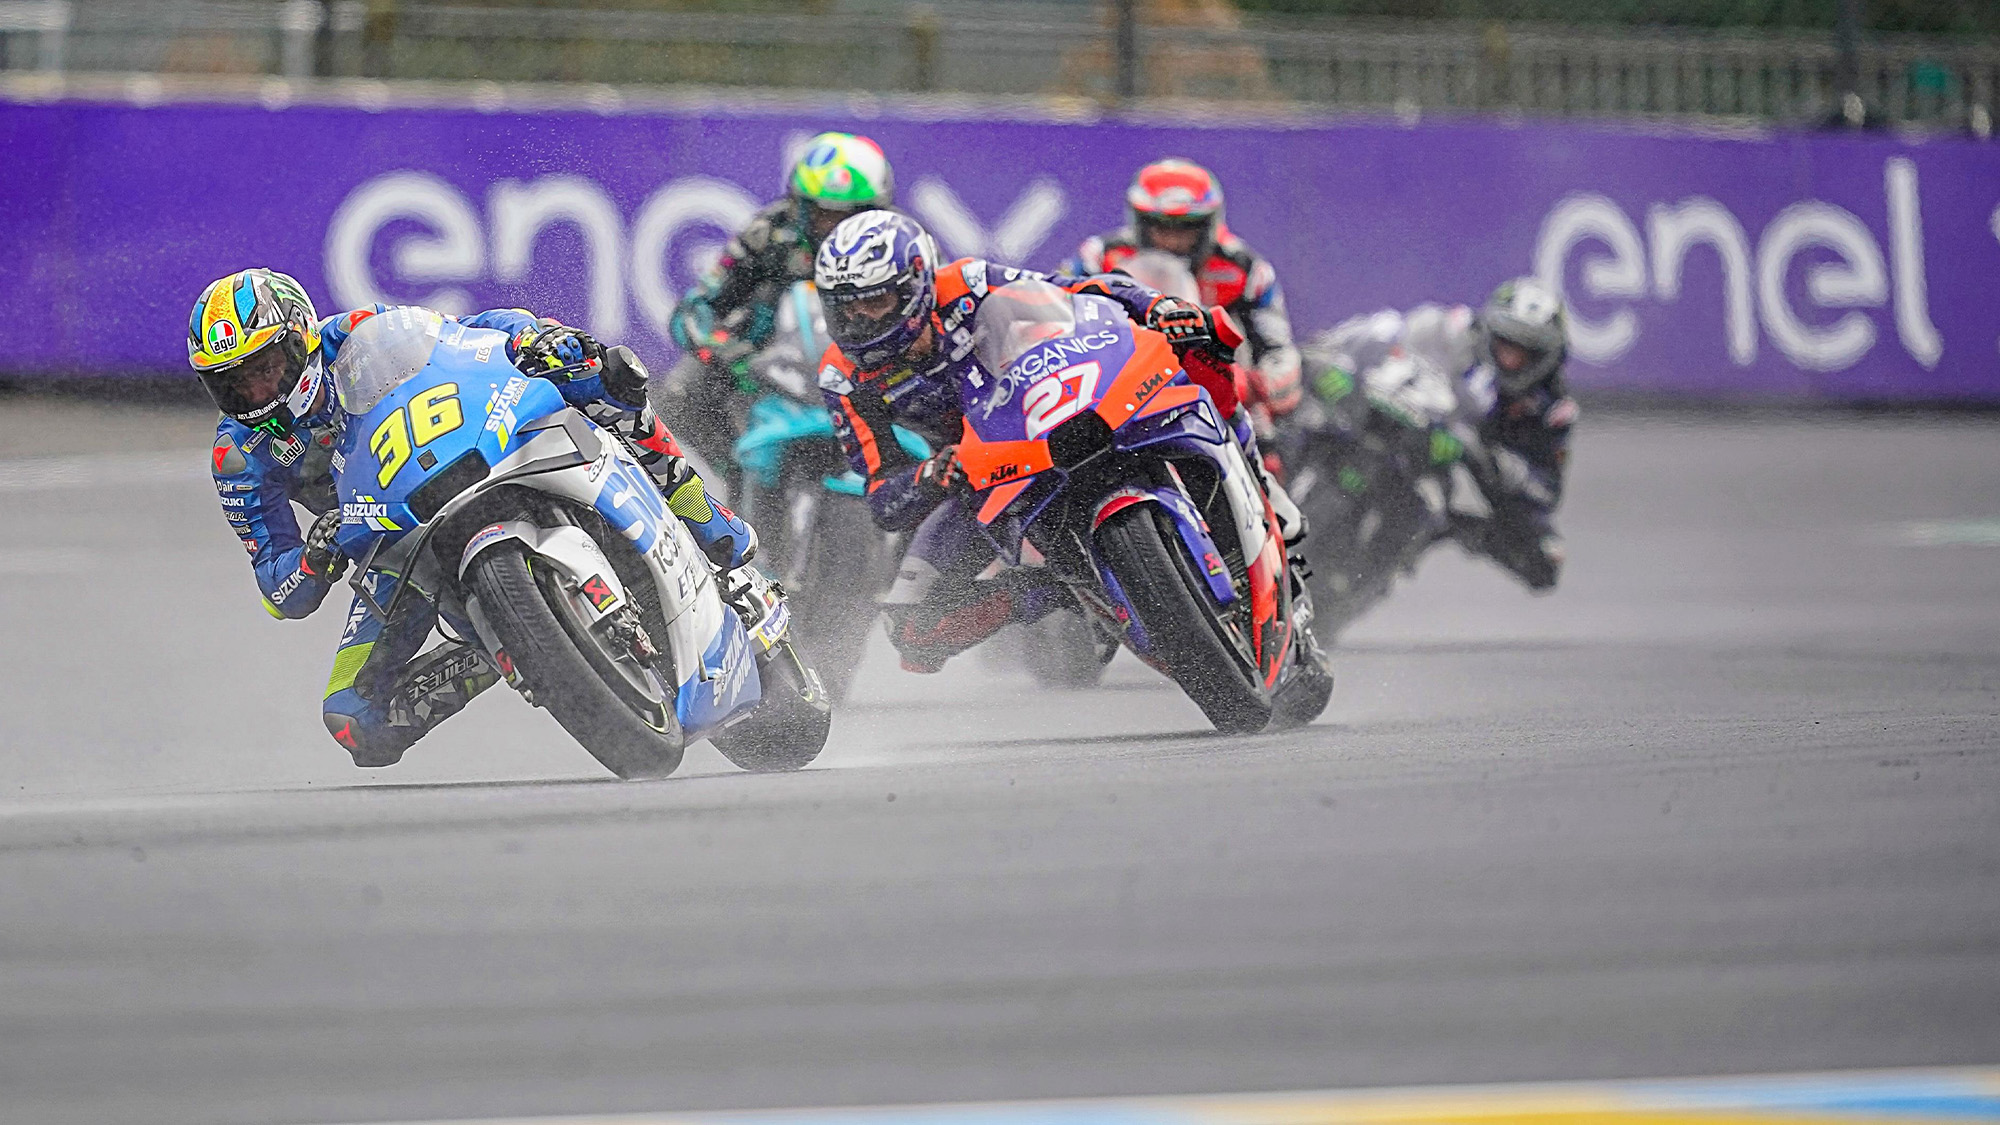 Joan Mir in the rain on his Suzuki during the 2020 MotoGP French Grand Prix at Le Mans